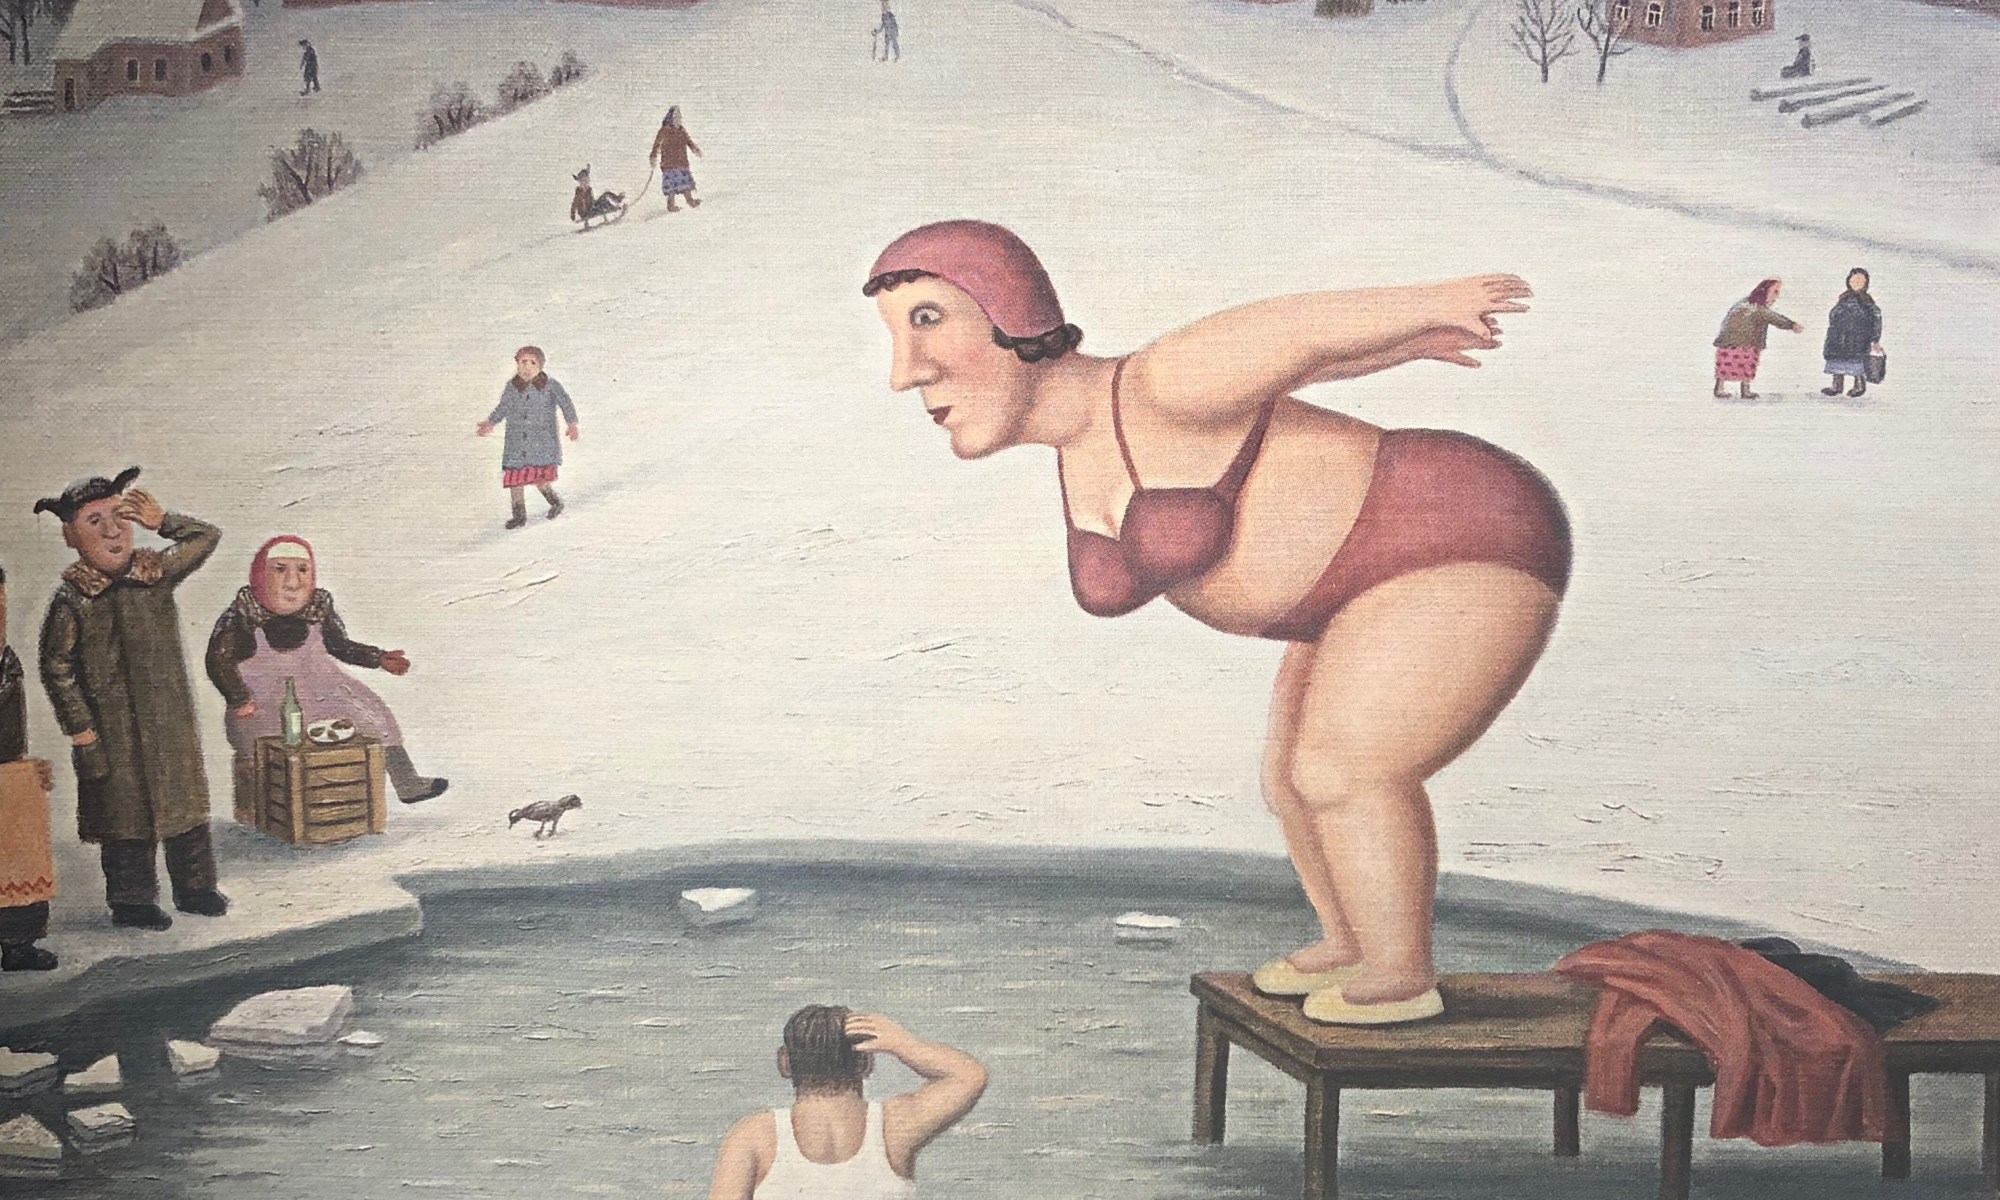 winter swimming in Russia